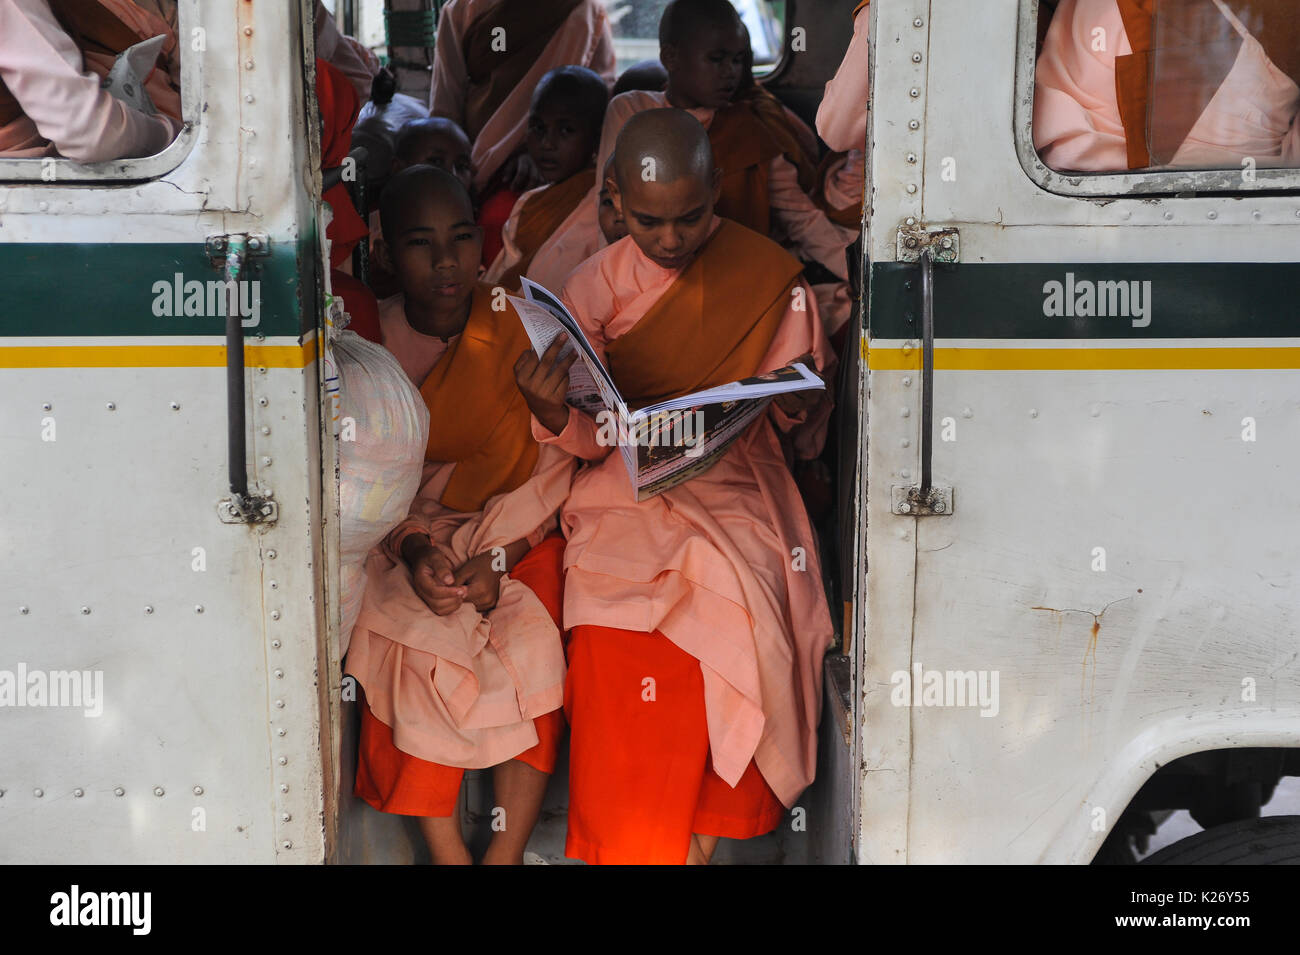 10.10.2013, Yangon, Republic of the Union of Myanmar, Asia - A Buddhist nun is reading a newspaper on a waiting bus. - Stock Image